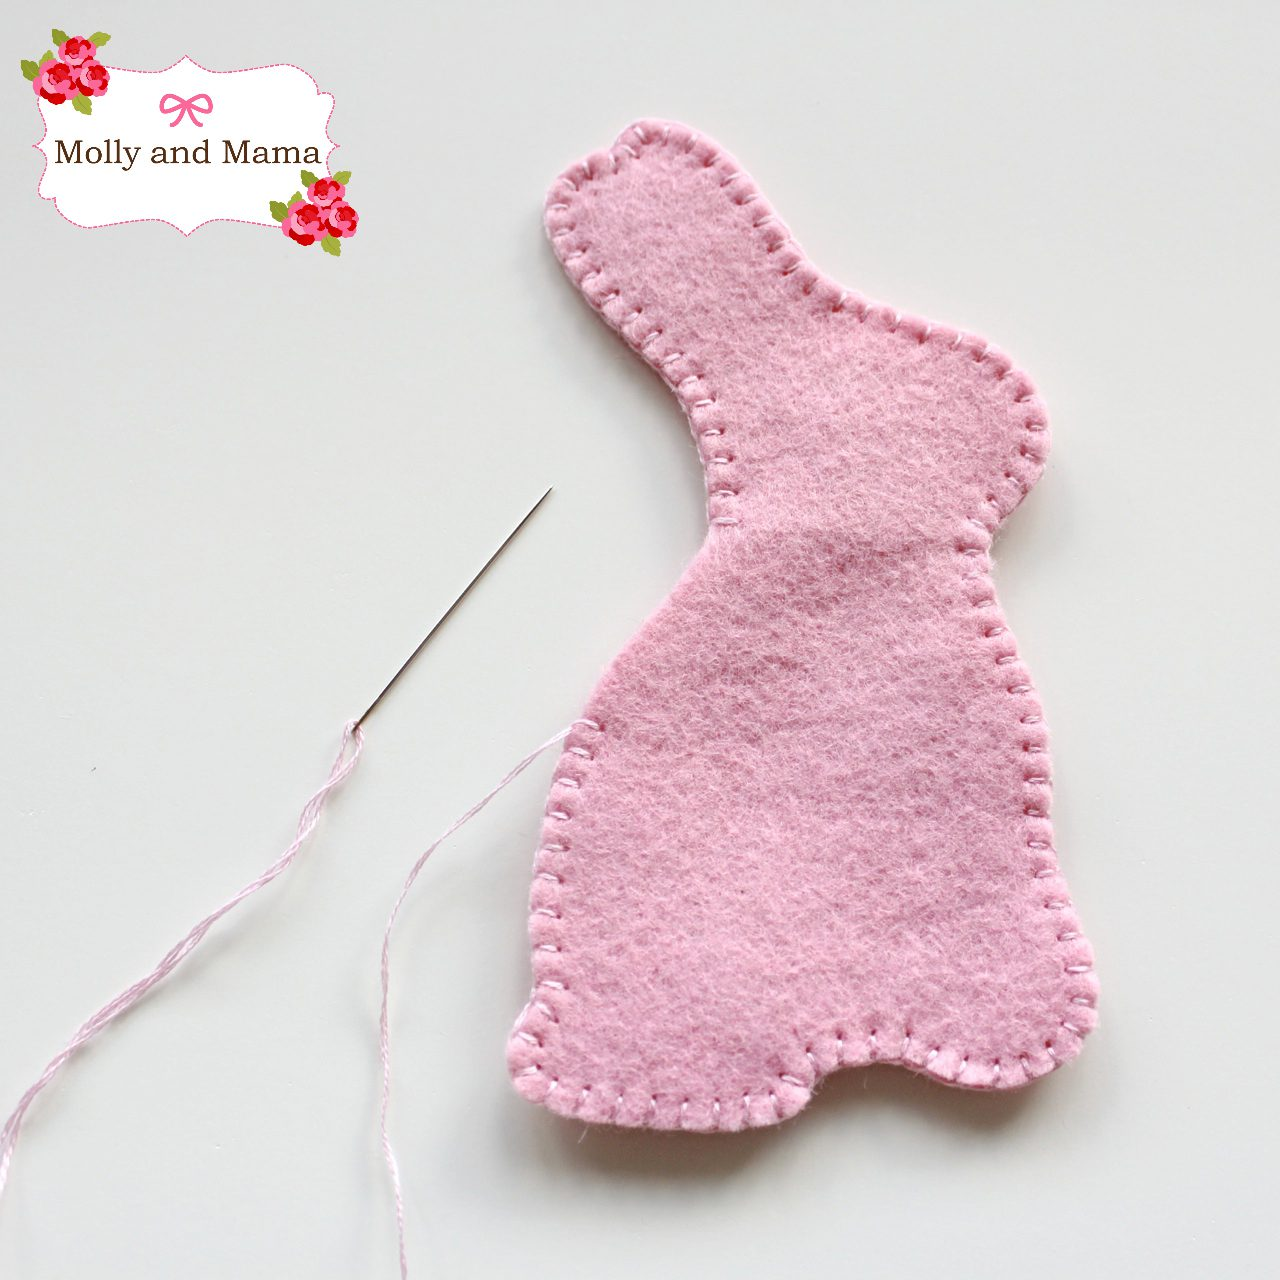 Easy Felt Bunny Tutorial by Molly and Mama 5